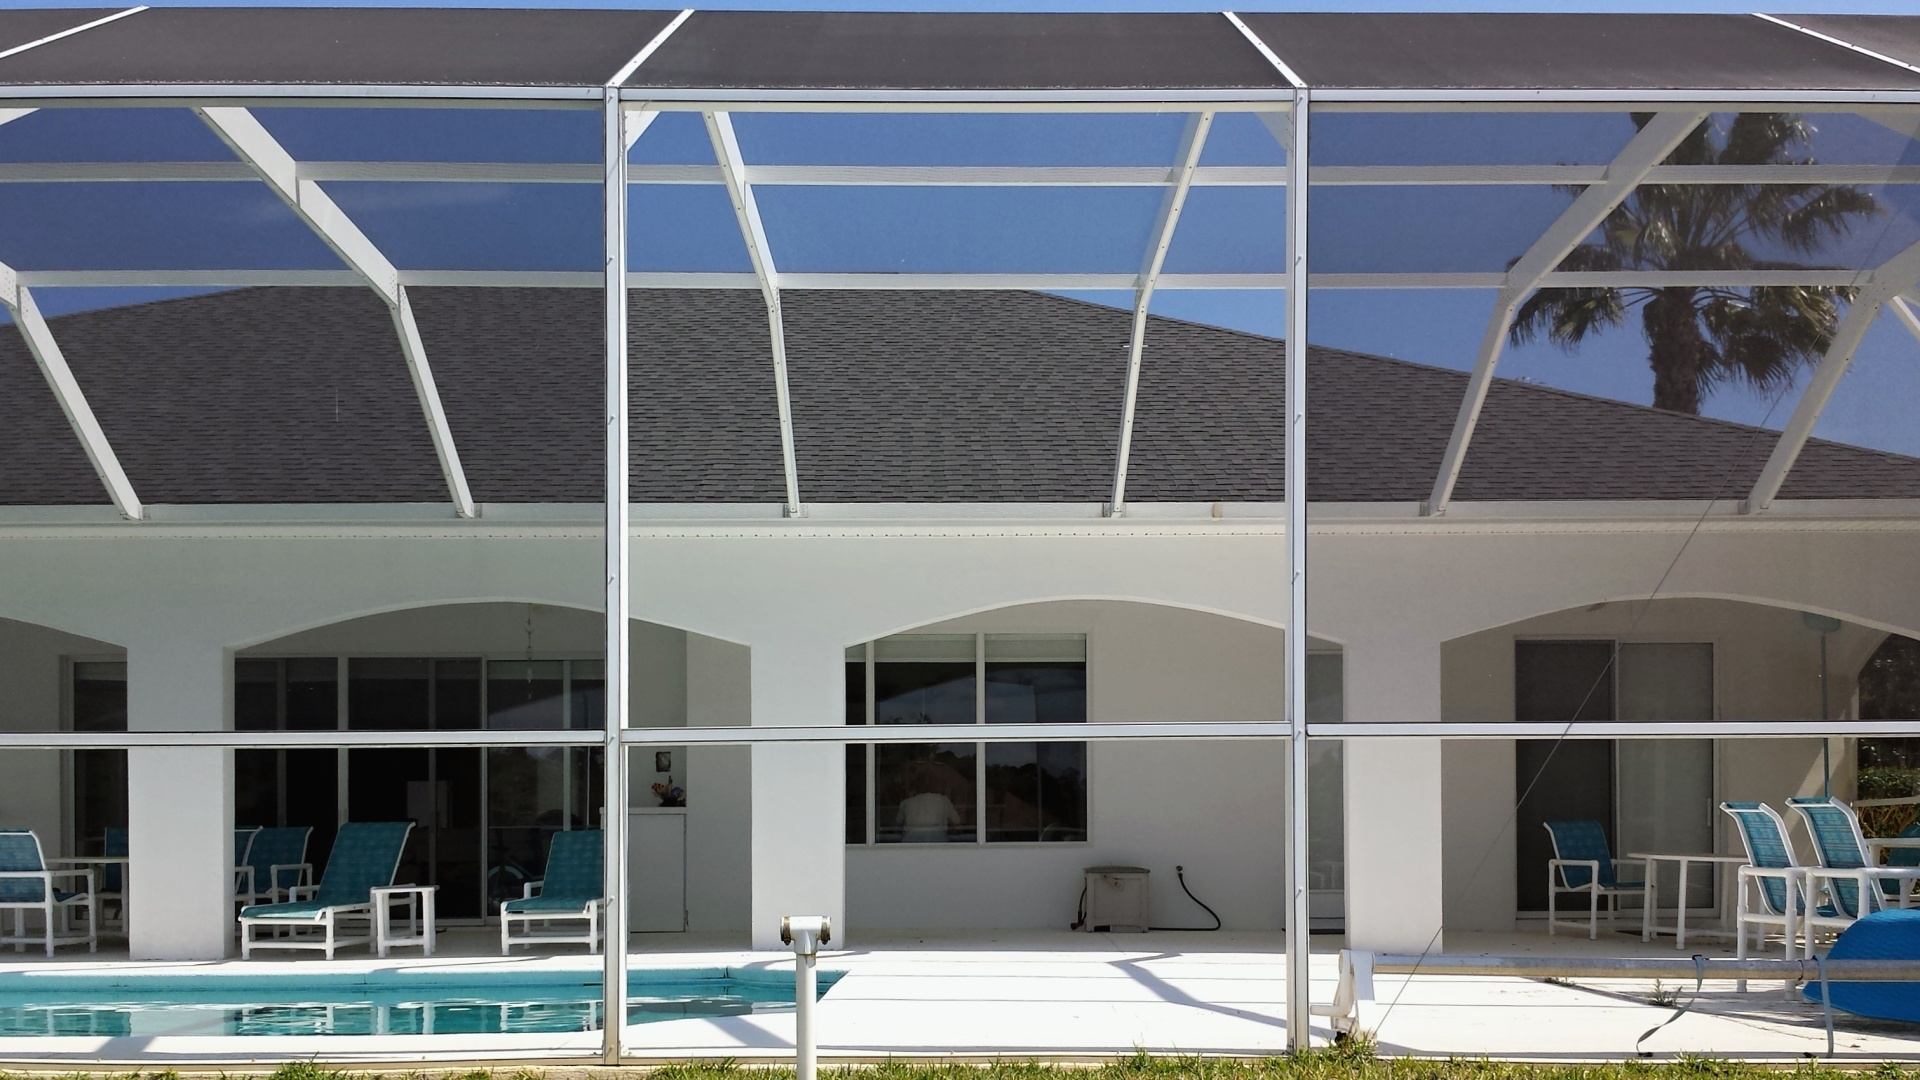 pool-screen-repair-ormond-beach-09-1080p.jpg